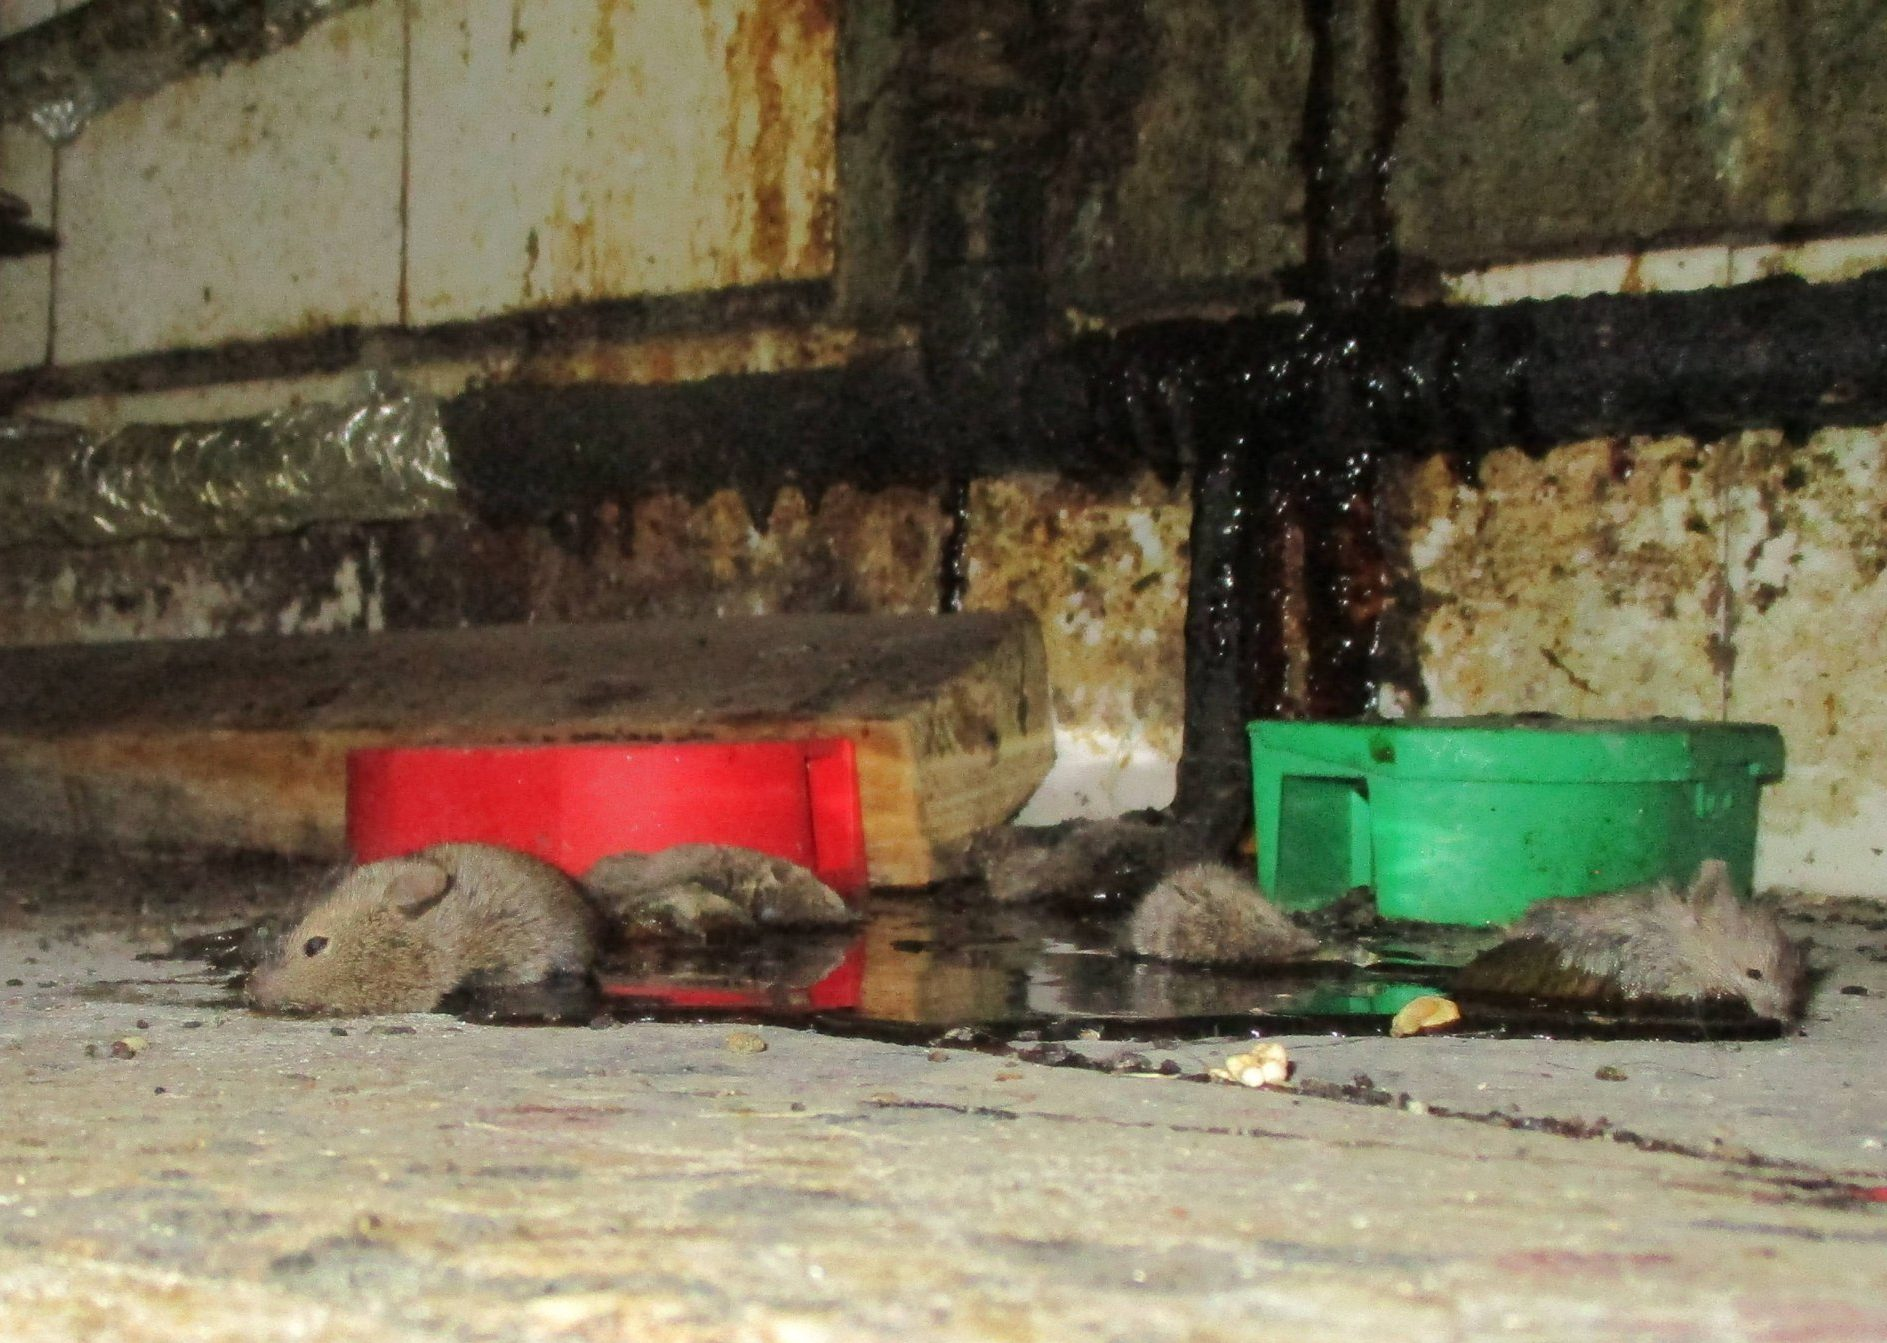 WALTHAMSTOW, LONDON These horrific scenes from a rodent-infested London pizzeria reveal a real Hell???s Kitchen. Franco Pizza in Hoe Street, Walthamstow, was closed by food hygiene chiefs (Credit: Pen News) (Pen News ??25, ??15, ??10 online) (Contact editor@pennews.co.uk/07595759112)